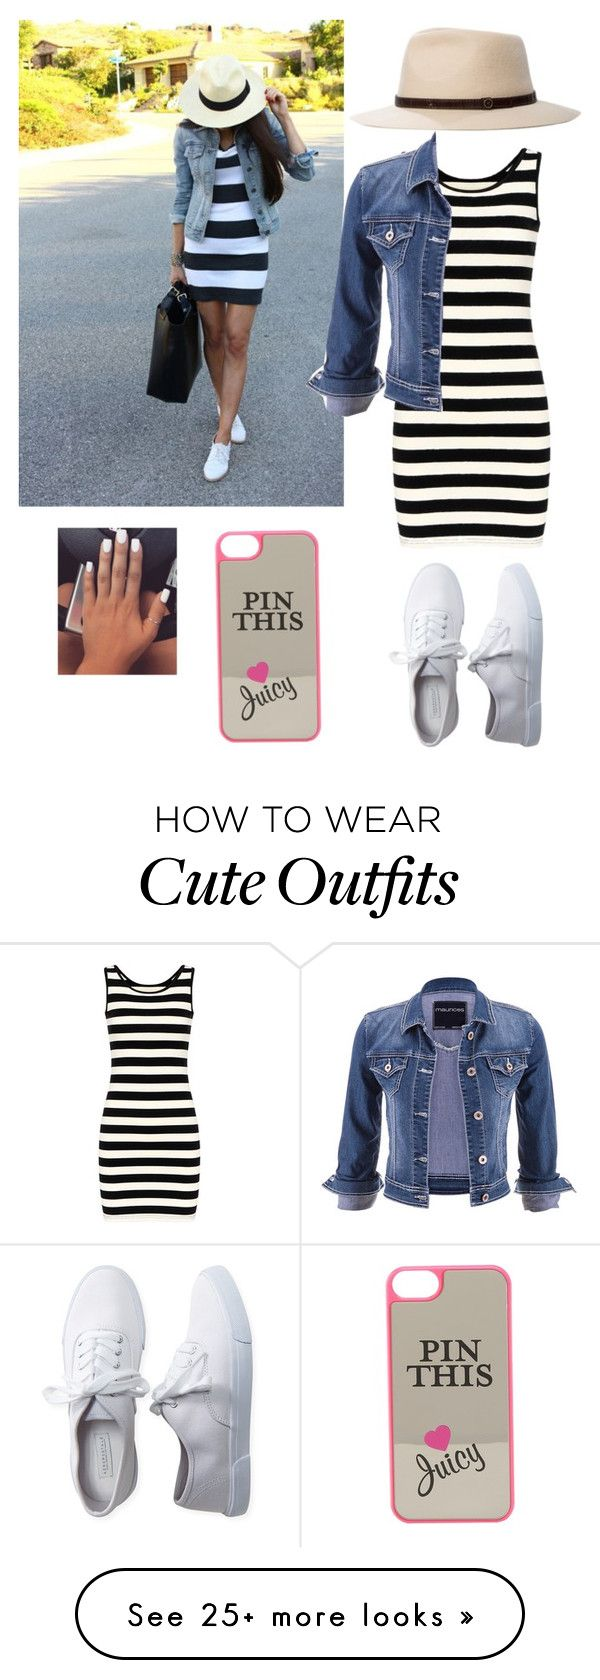 """""""Cute ;)"""" by mbayoub on Polyvore featuring Aéropostale, maurices, Fallenbrokenstreet and Juicy Couture"""